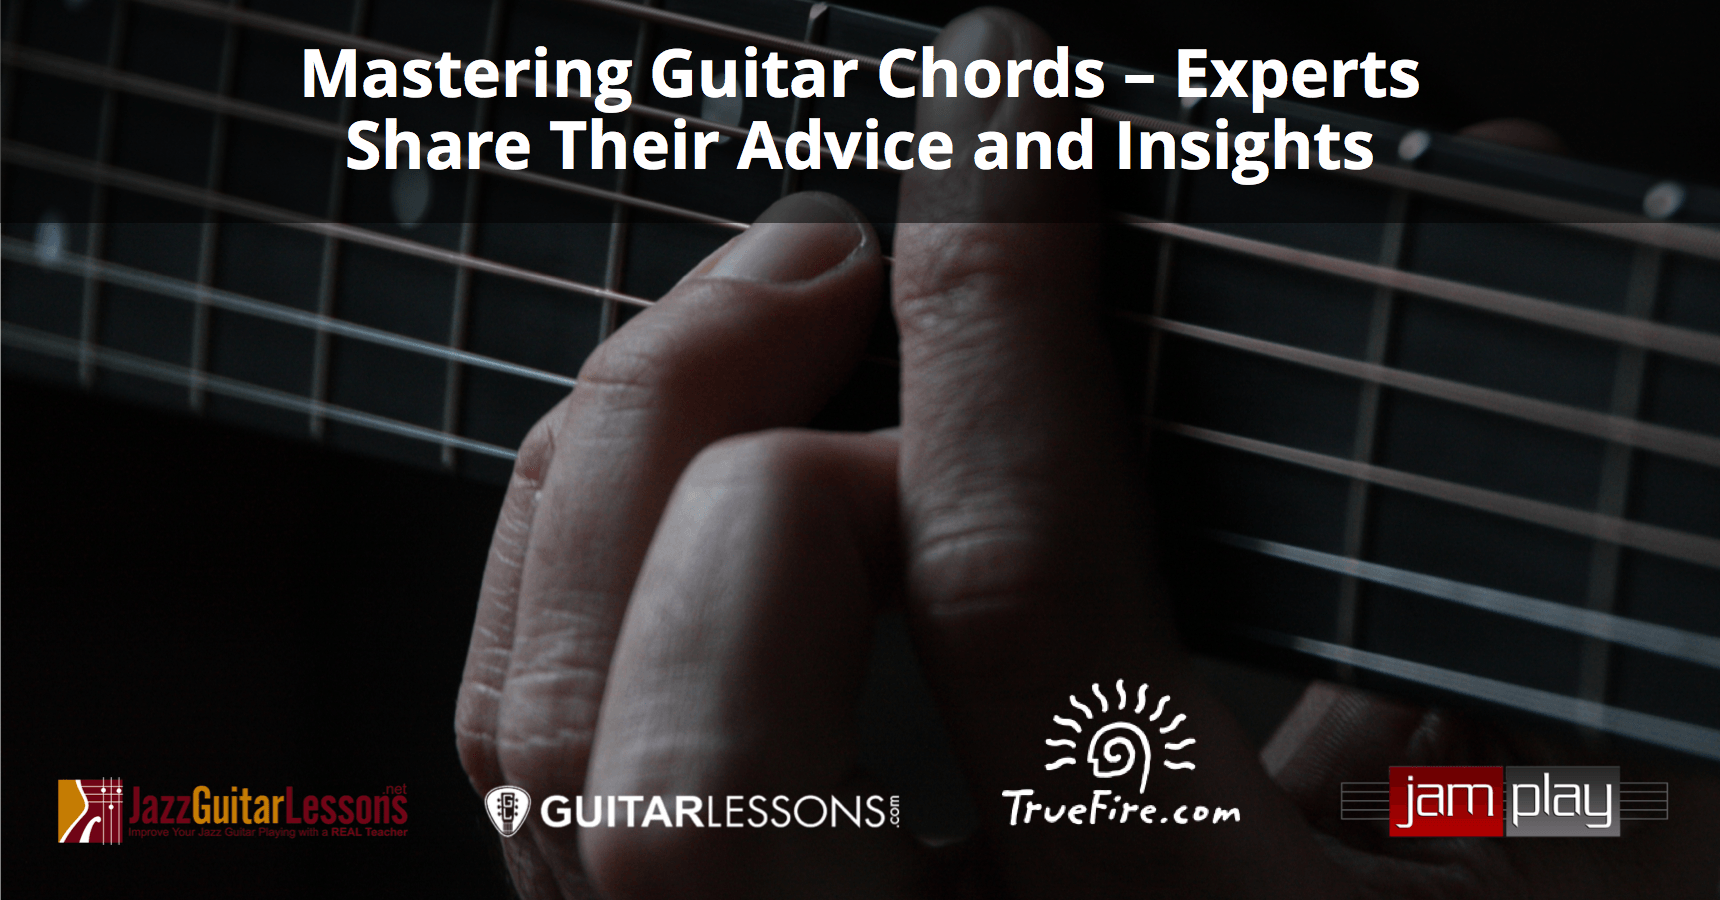 Mastering Guitar Chords 15 Experts Share Their Advice And